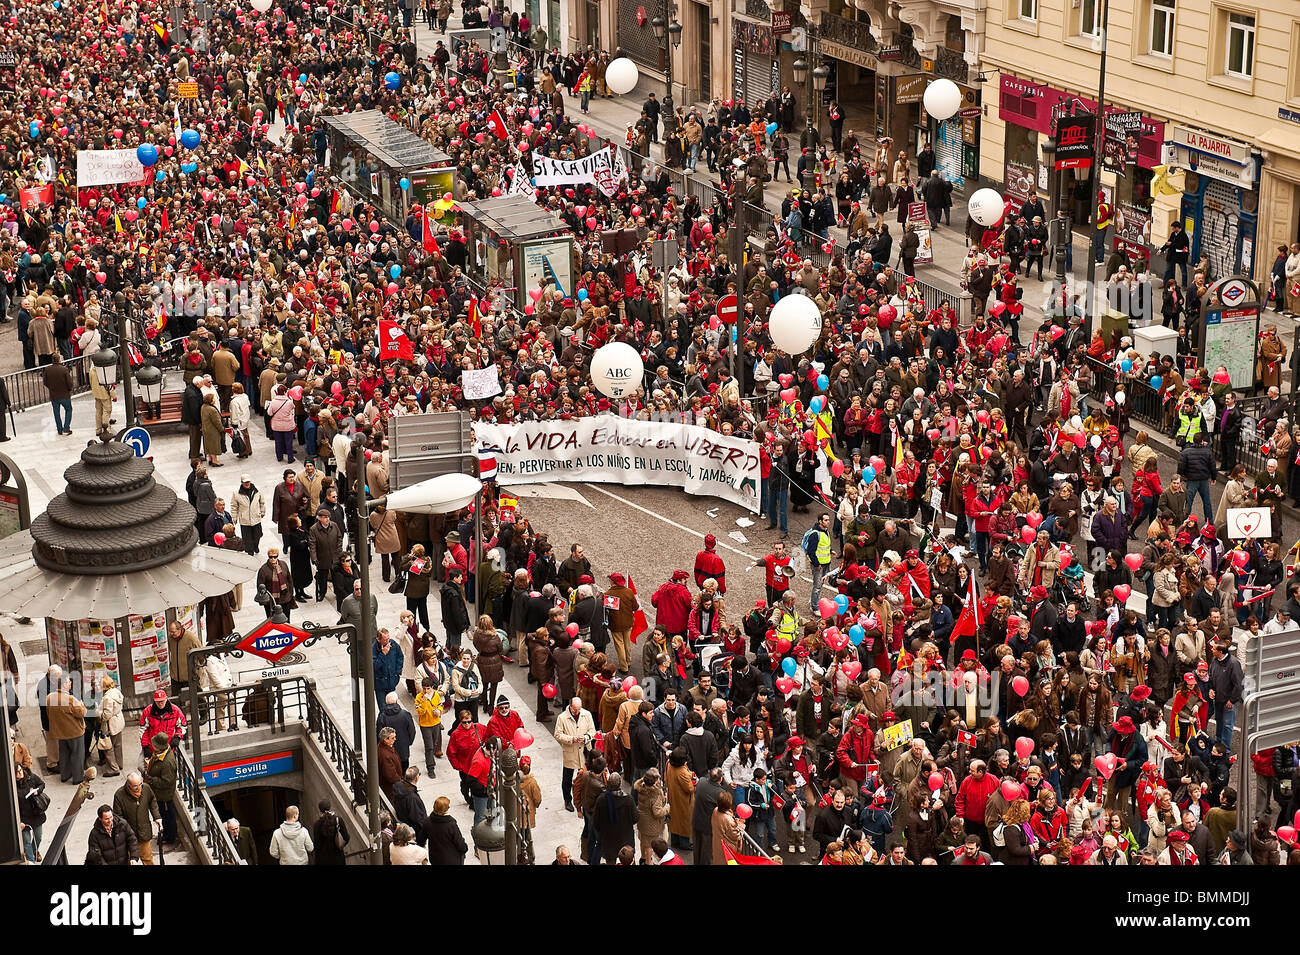 'March for Life' demonstration against current Spanish abortion laws, March 7th, Madrid, Spain. - Stock Image